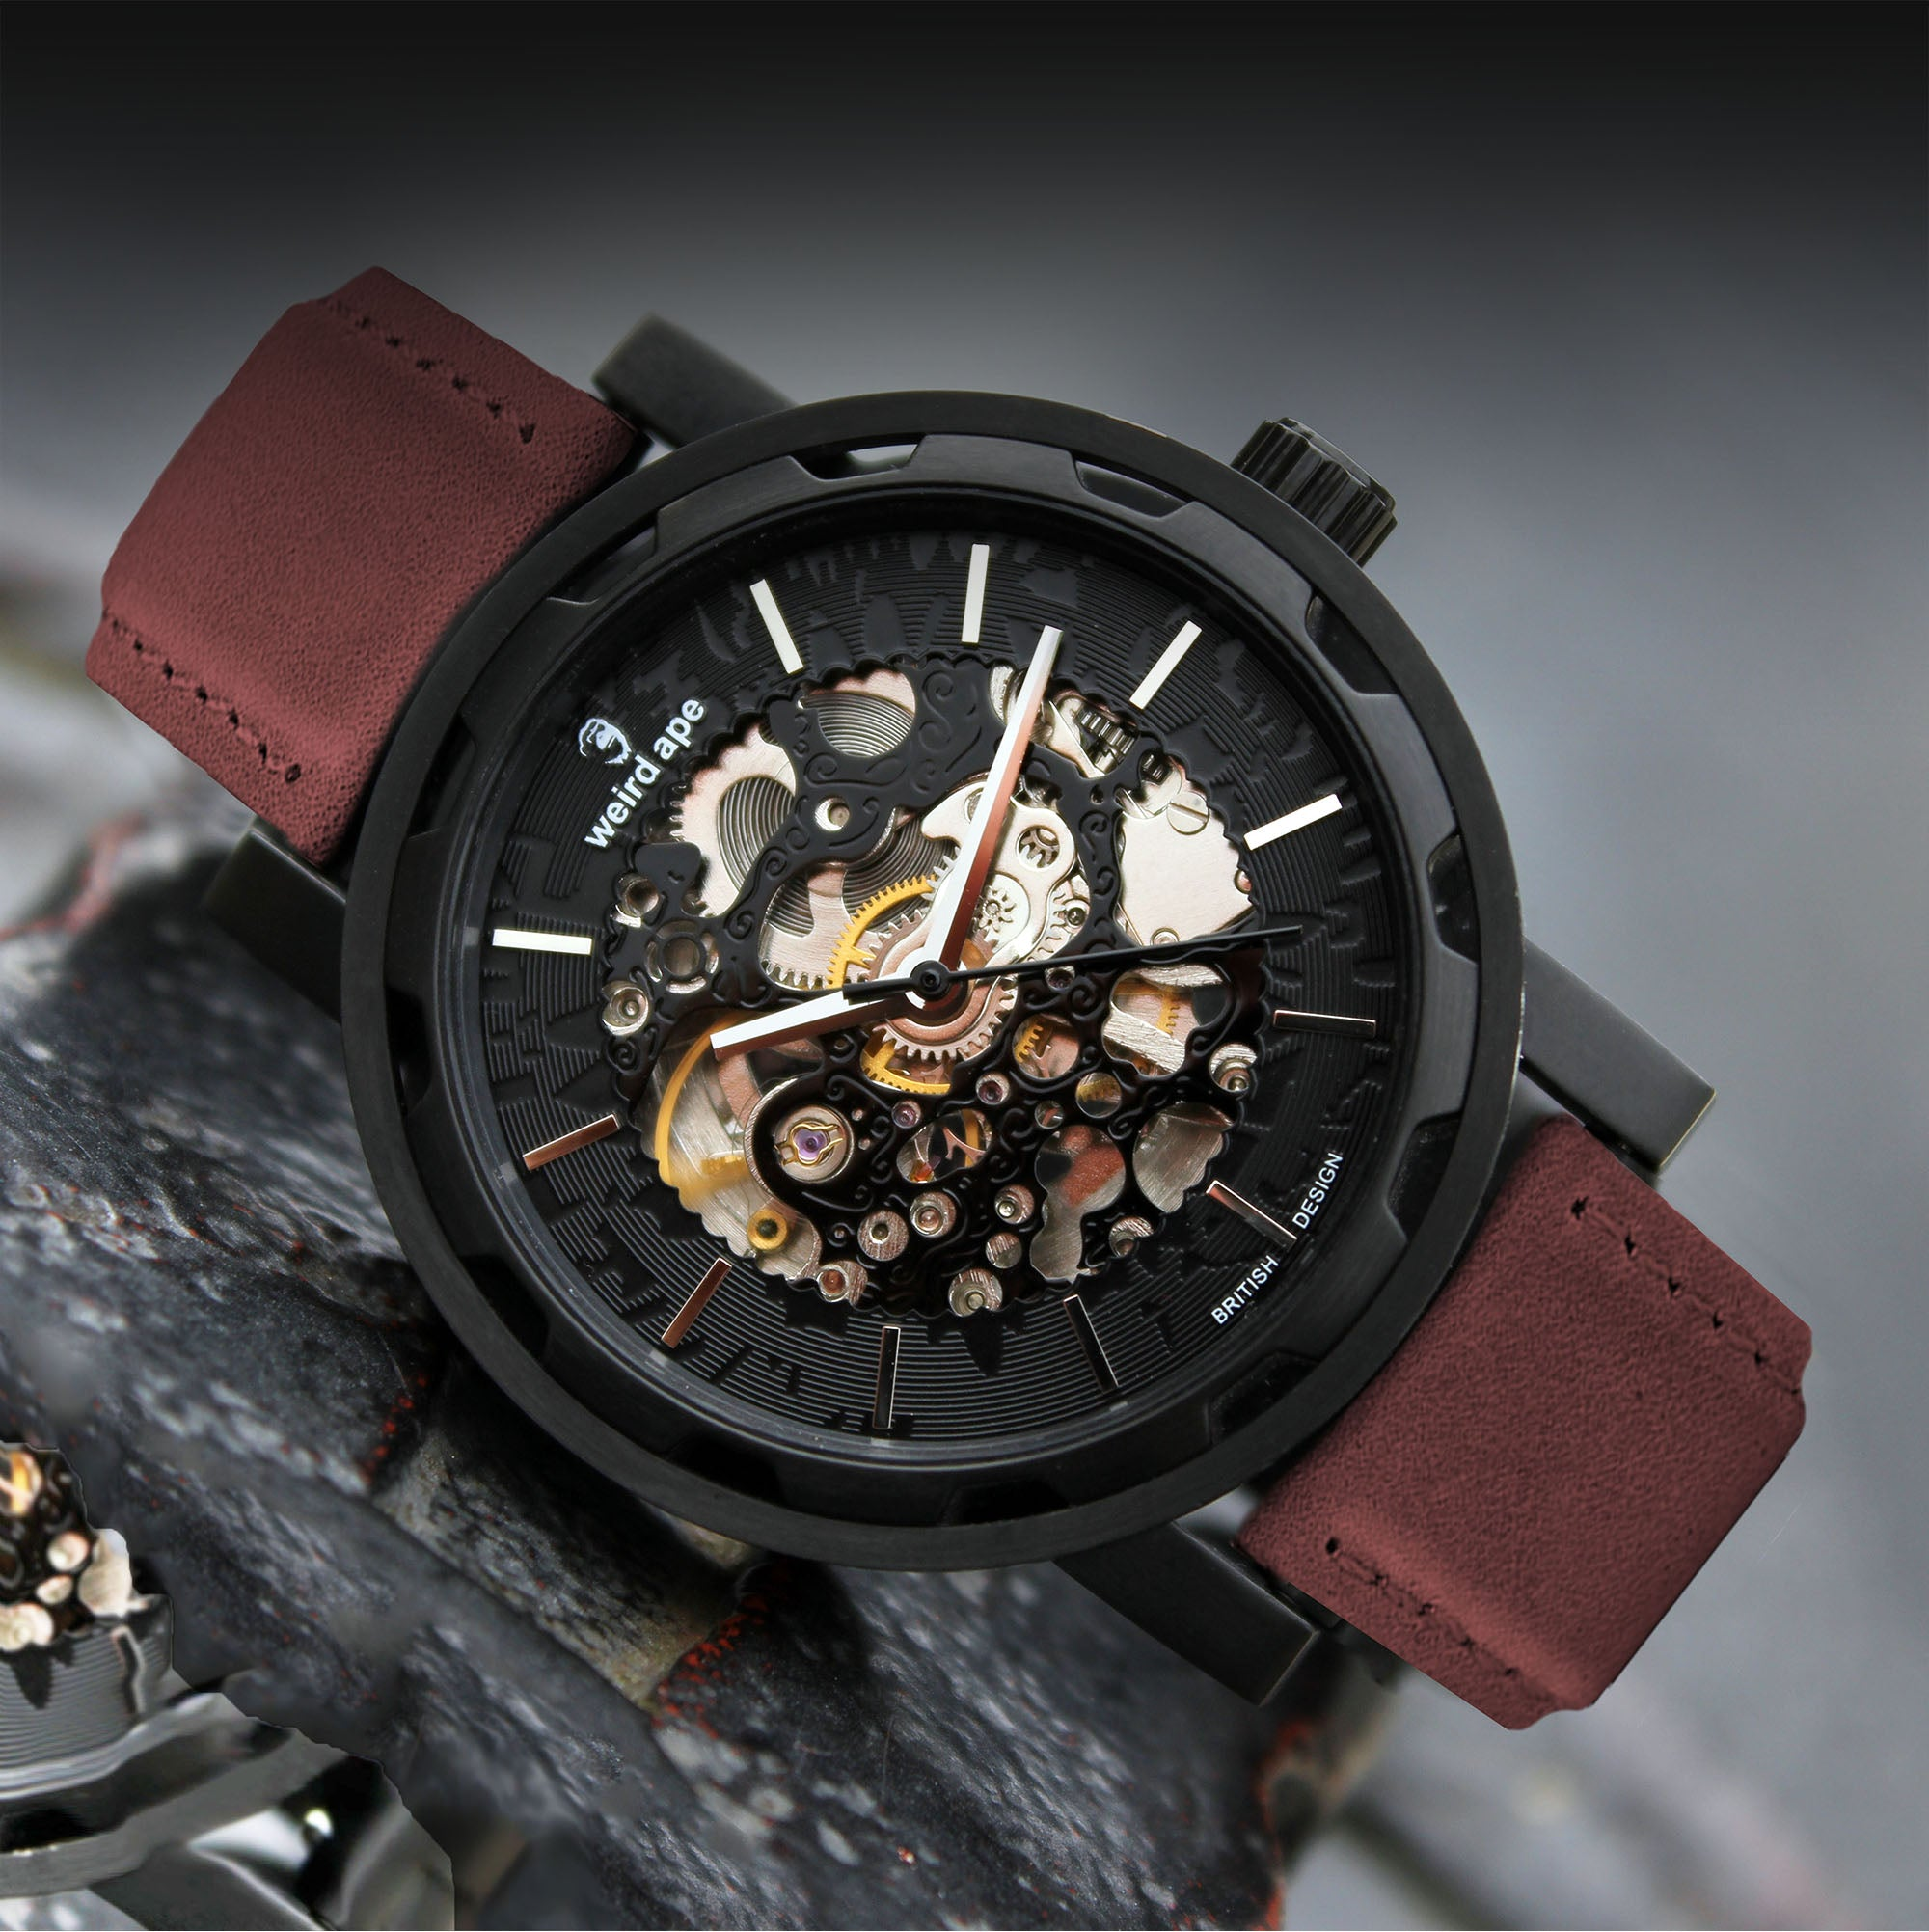 A picture of a black mechanical watch with a burgundy leather strap.